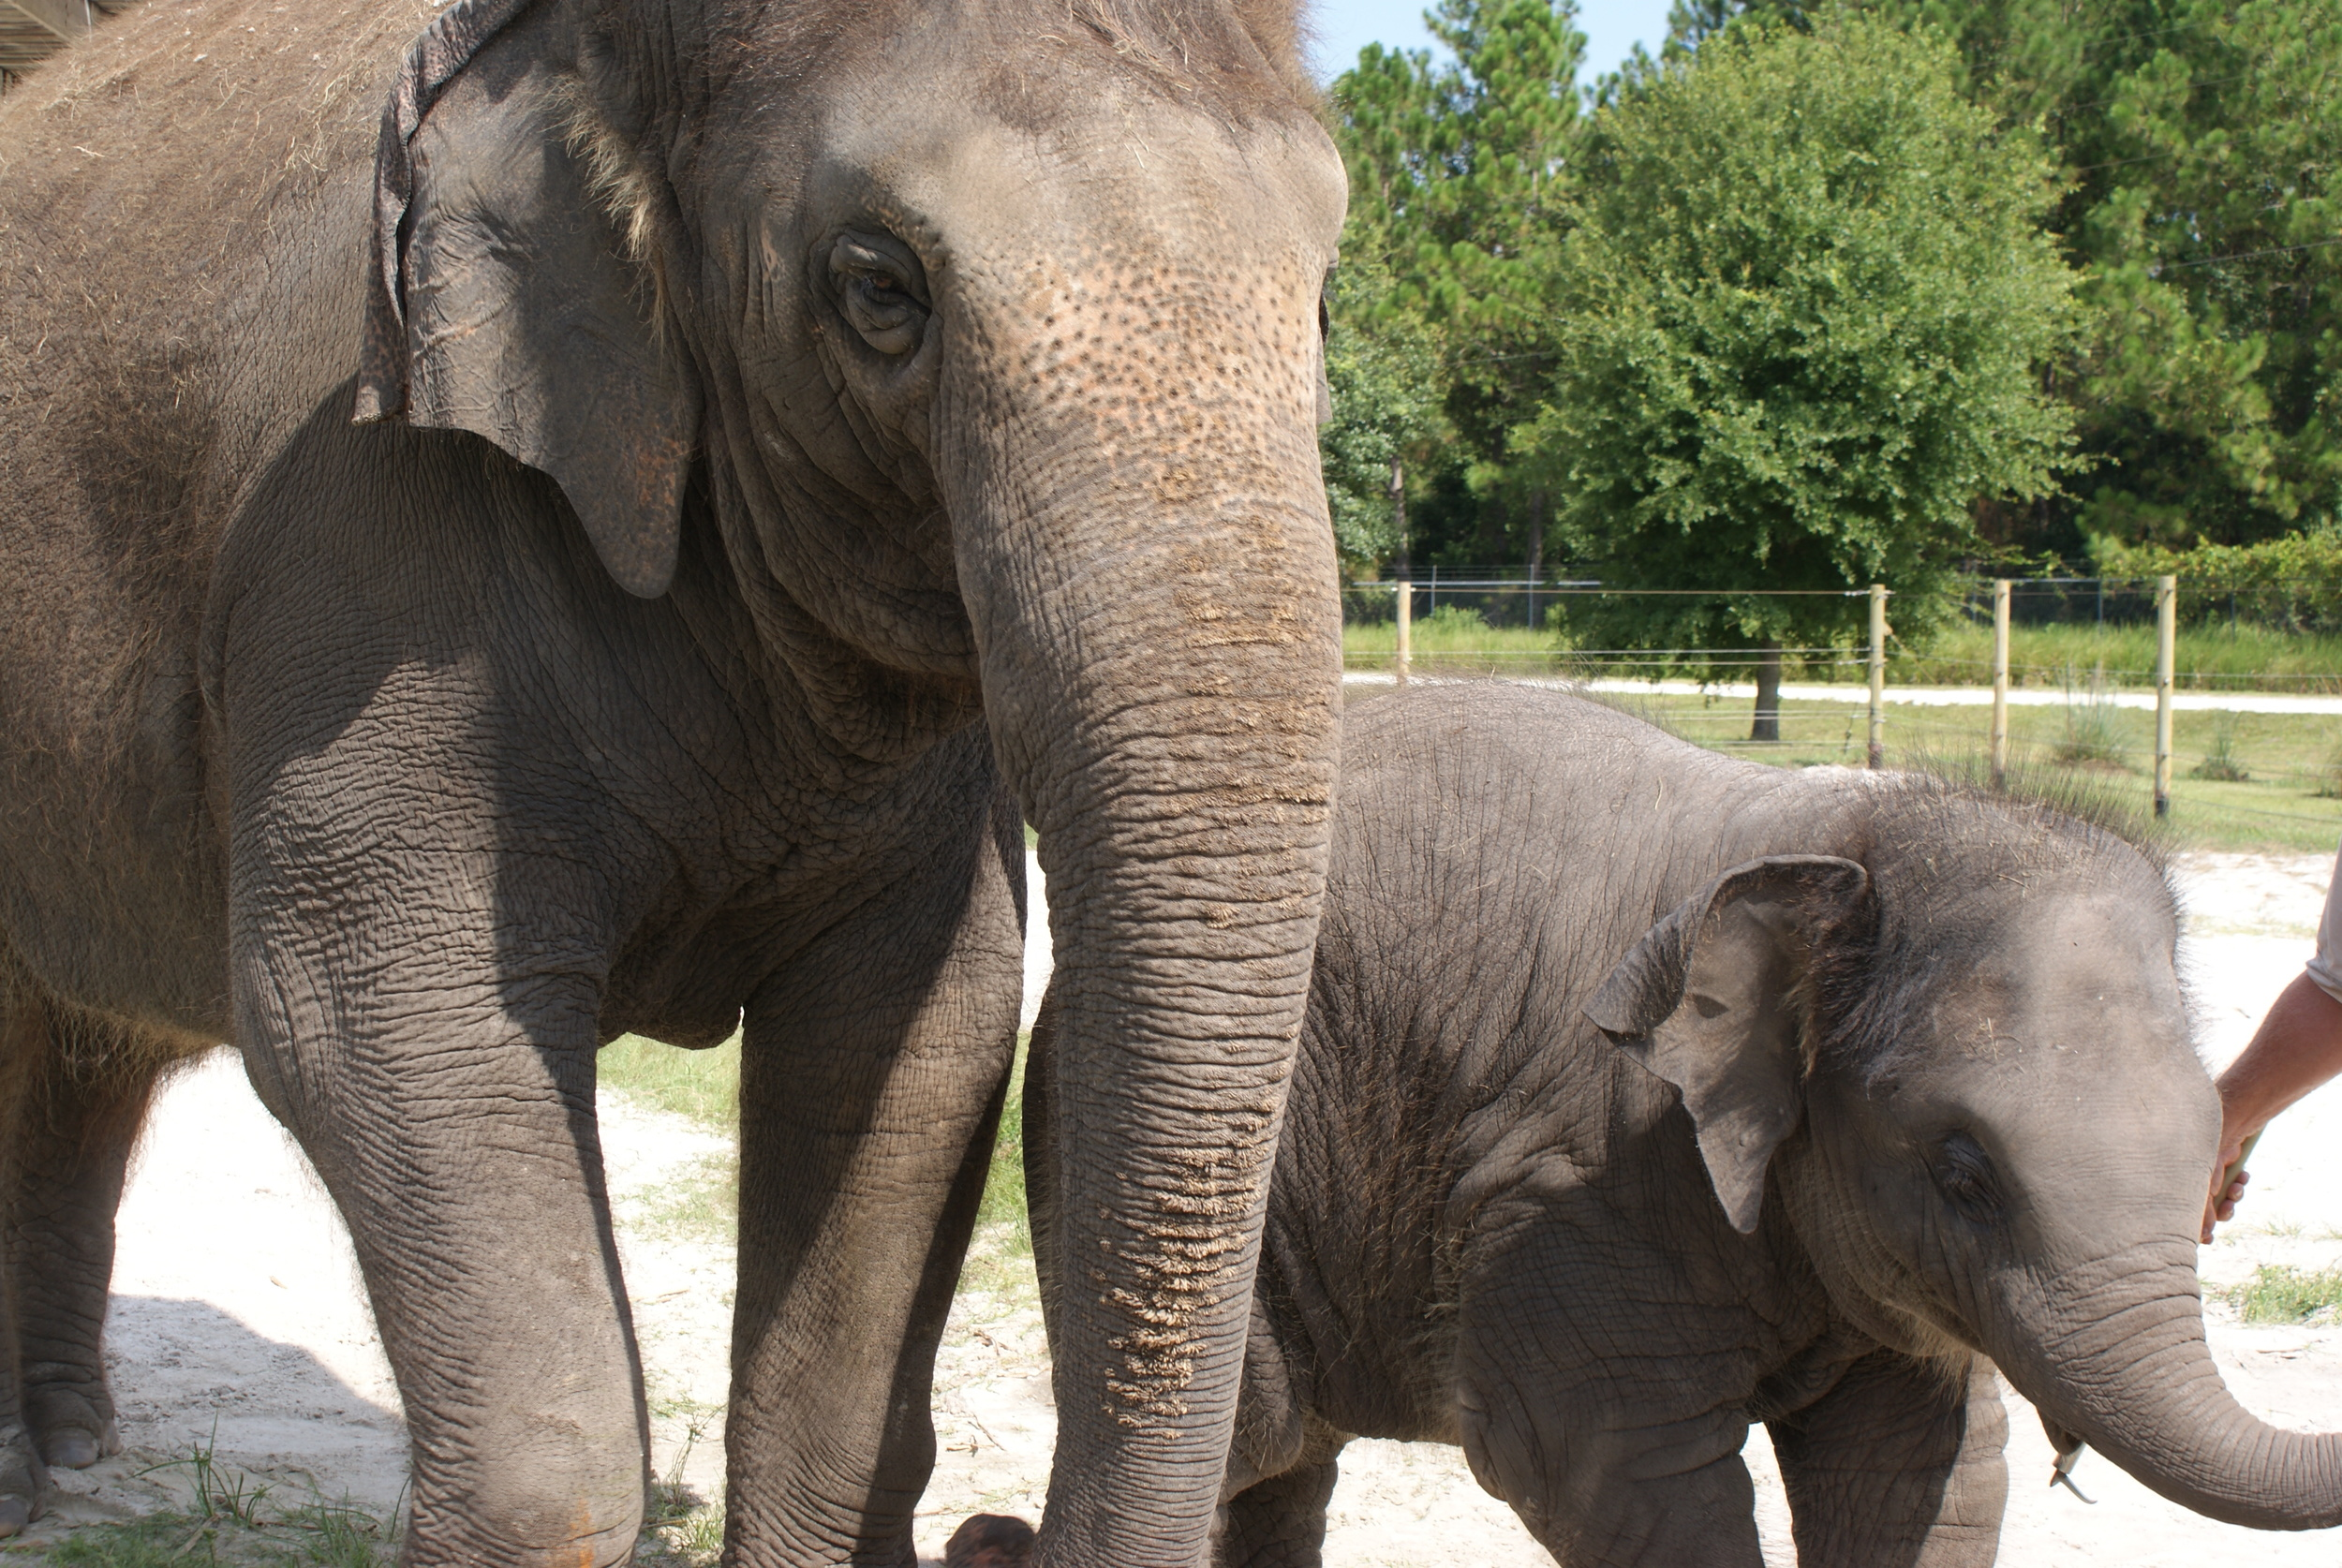 Elephant Conservation Ctr Aug 2014 148.JPG